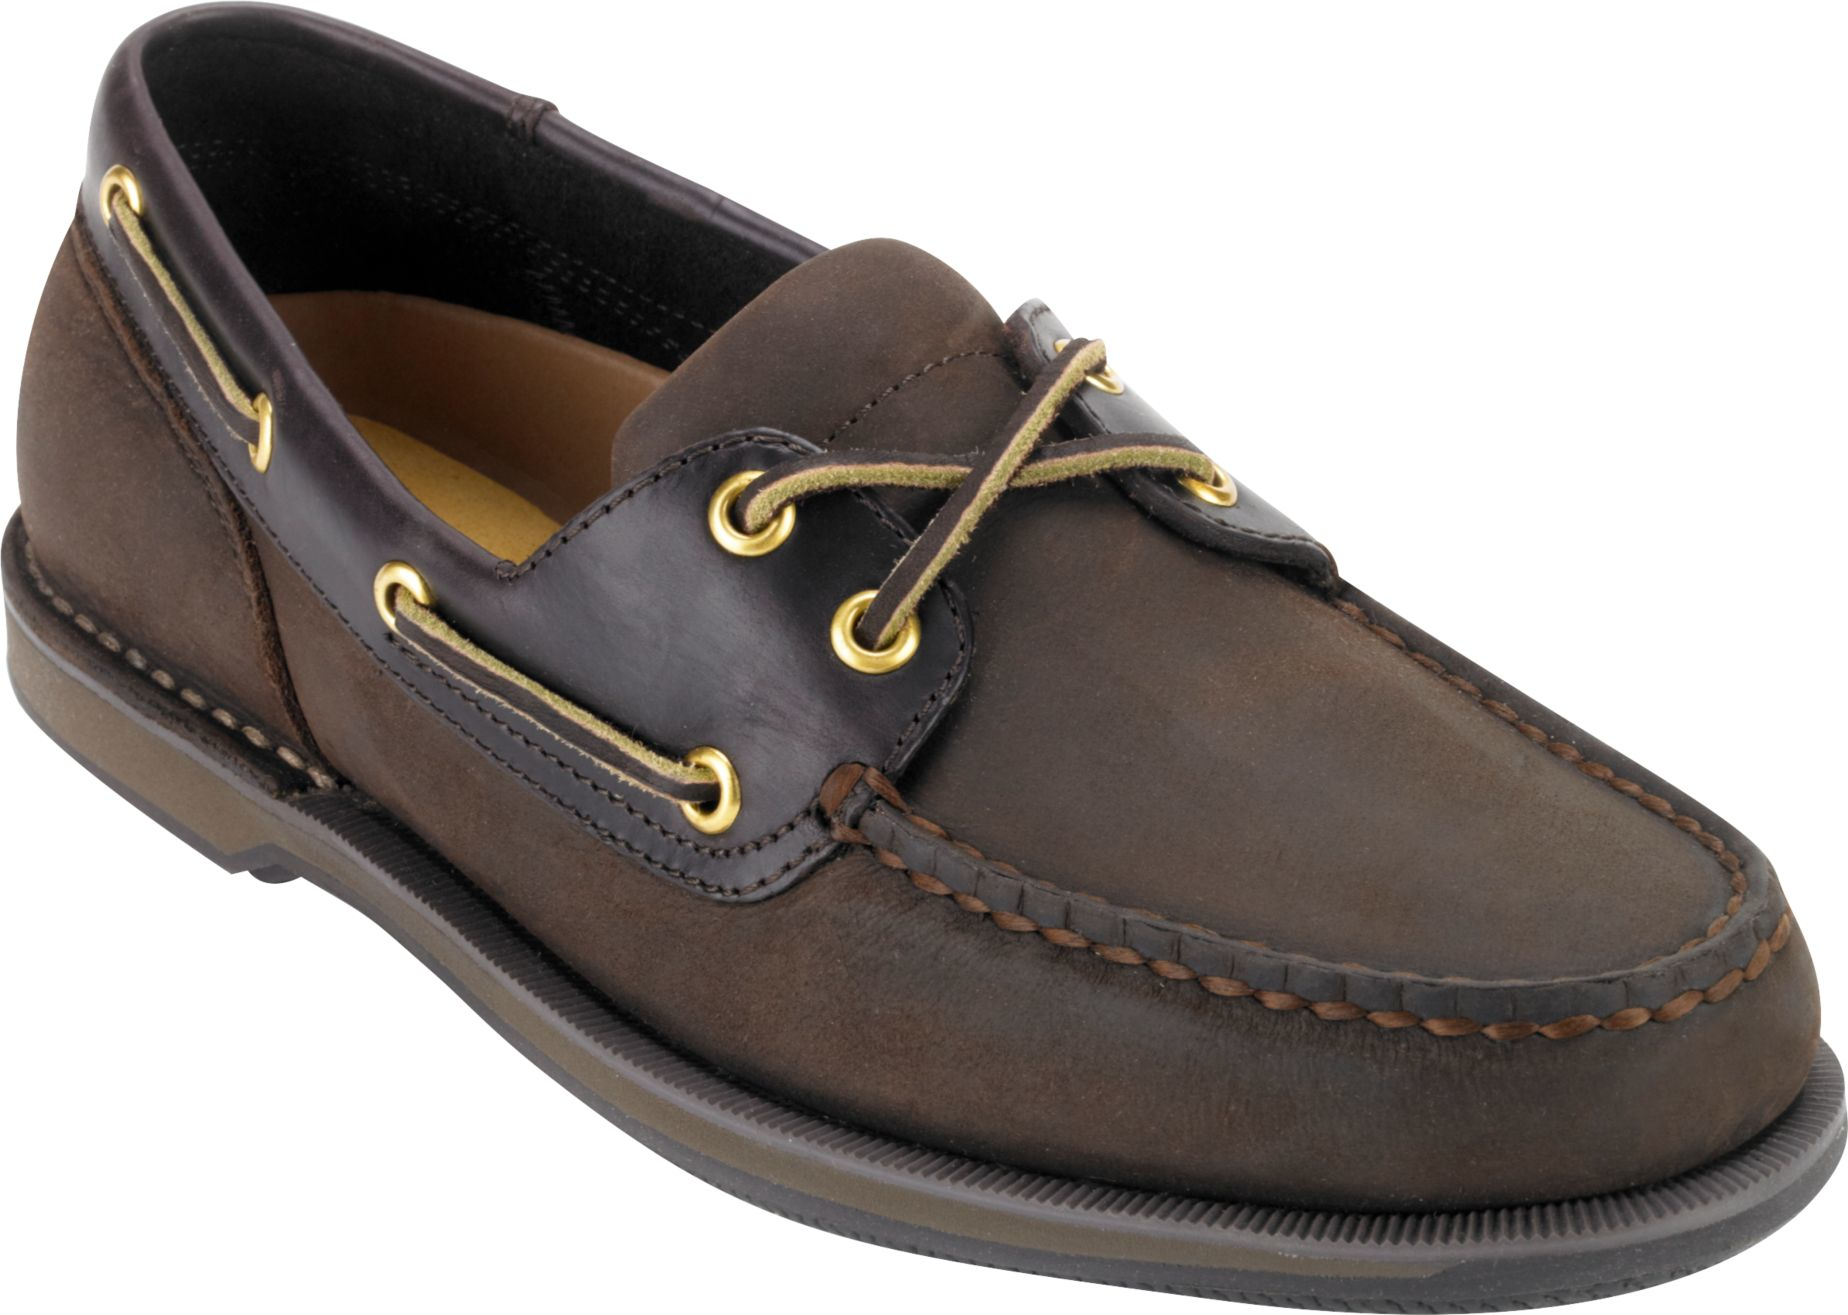 Perth Shoes Jos A Bank Perth Boat Shoe By Rockport In Black For Men